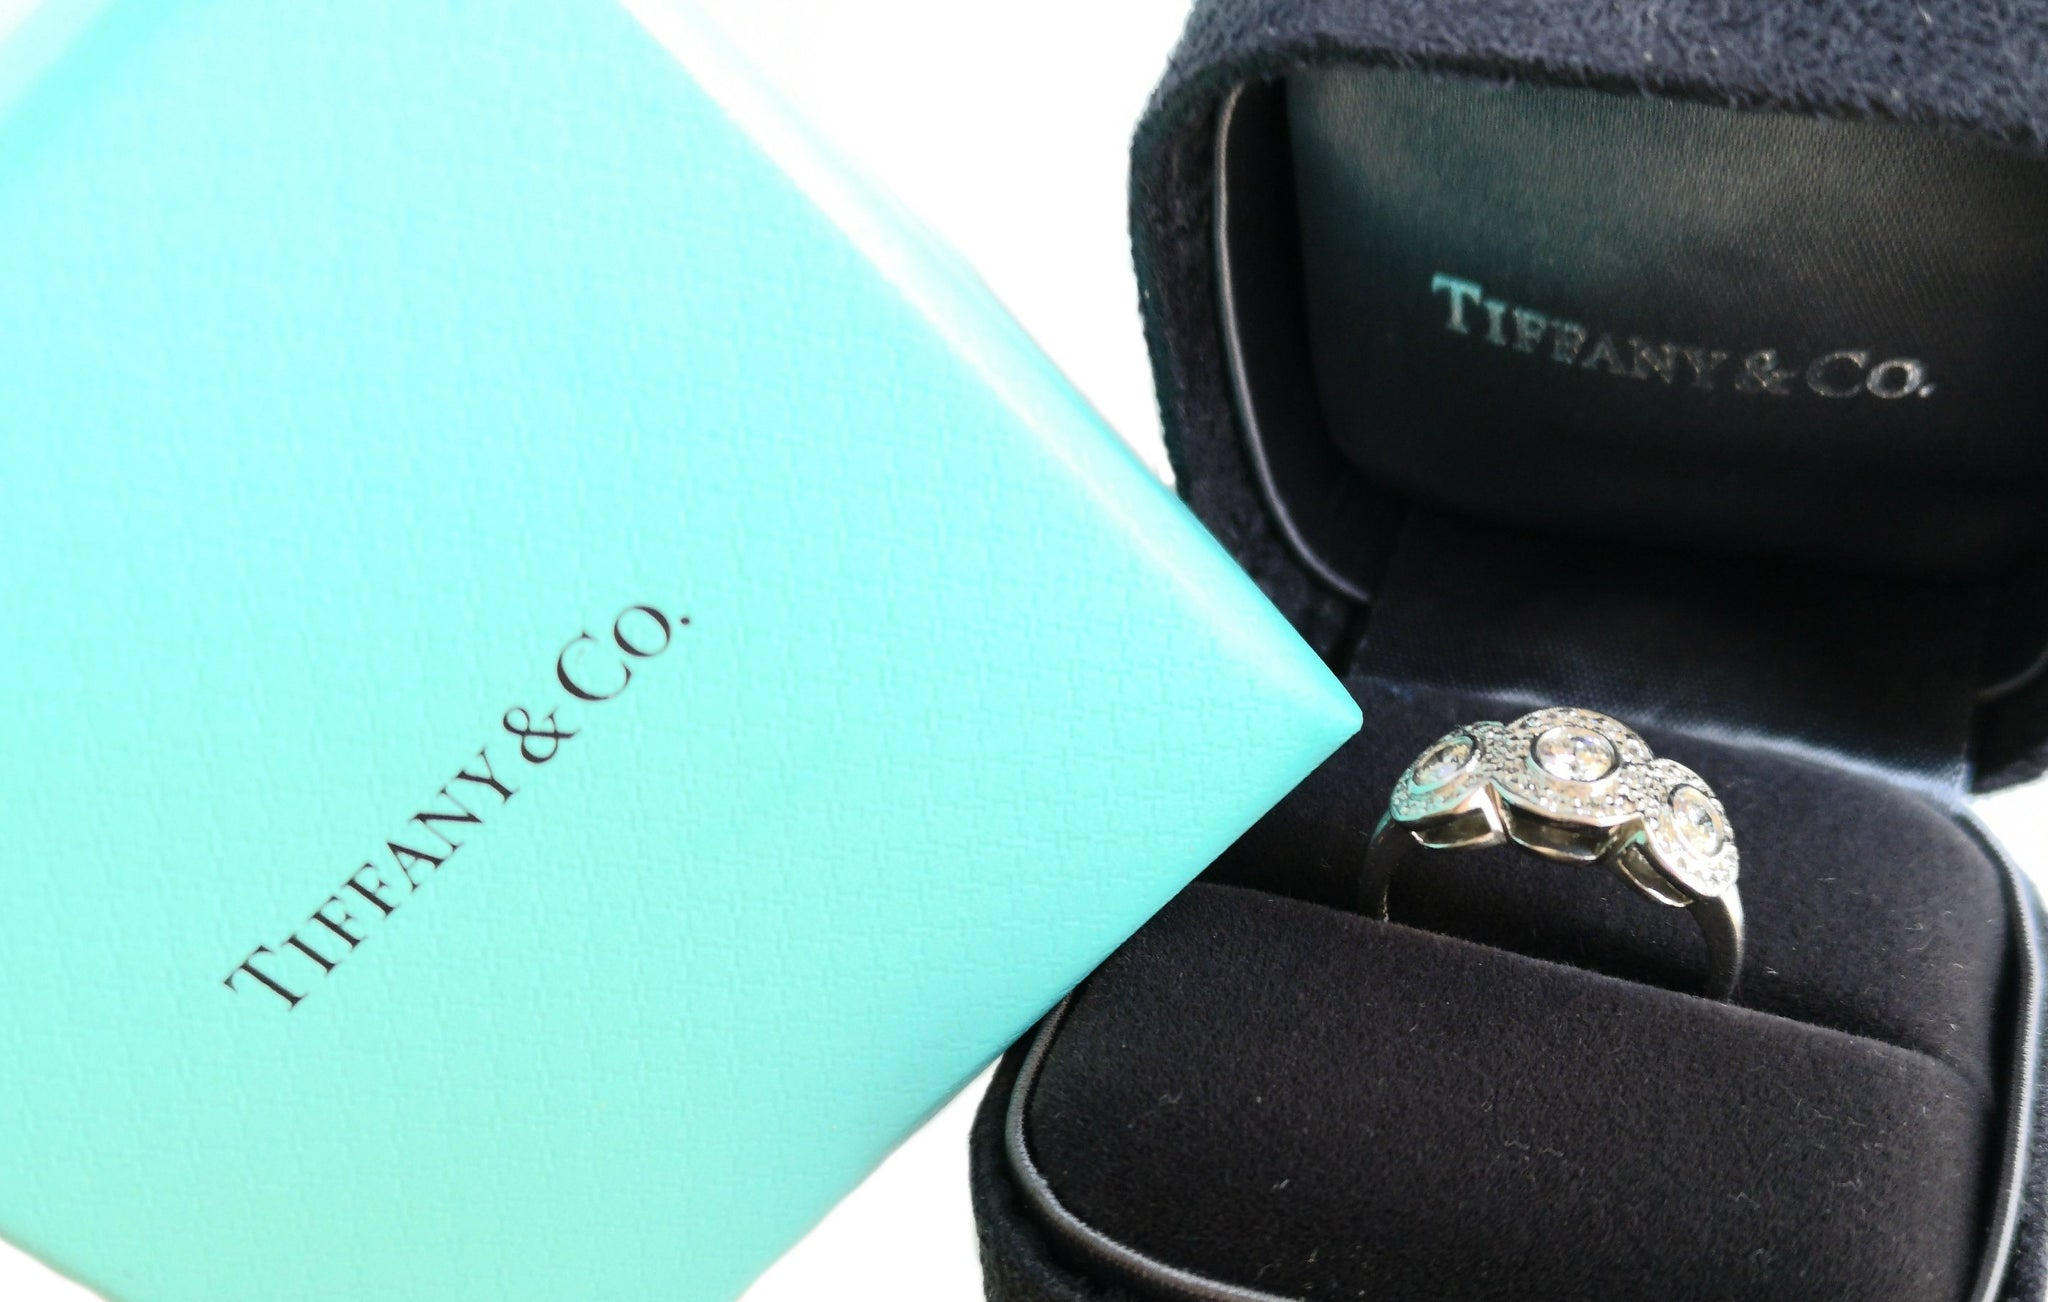 Tiffany & Co Circlet .53ct Round Brilliant Diamond Engagement Ring RRP £5000